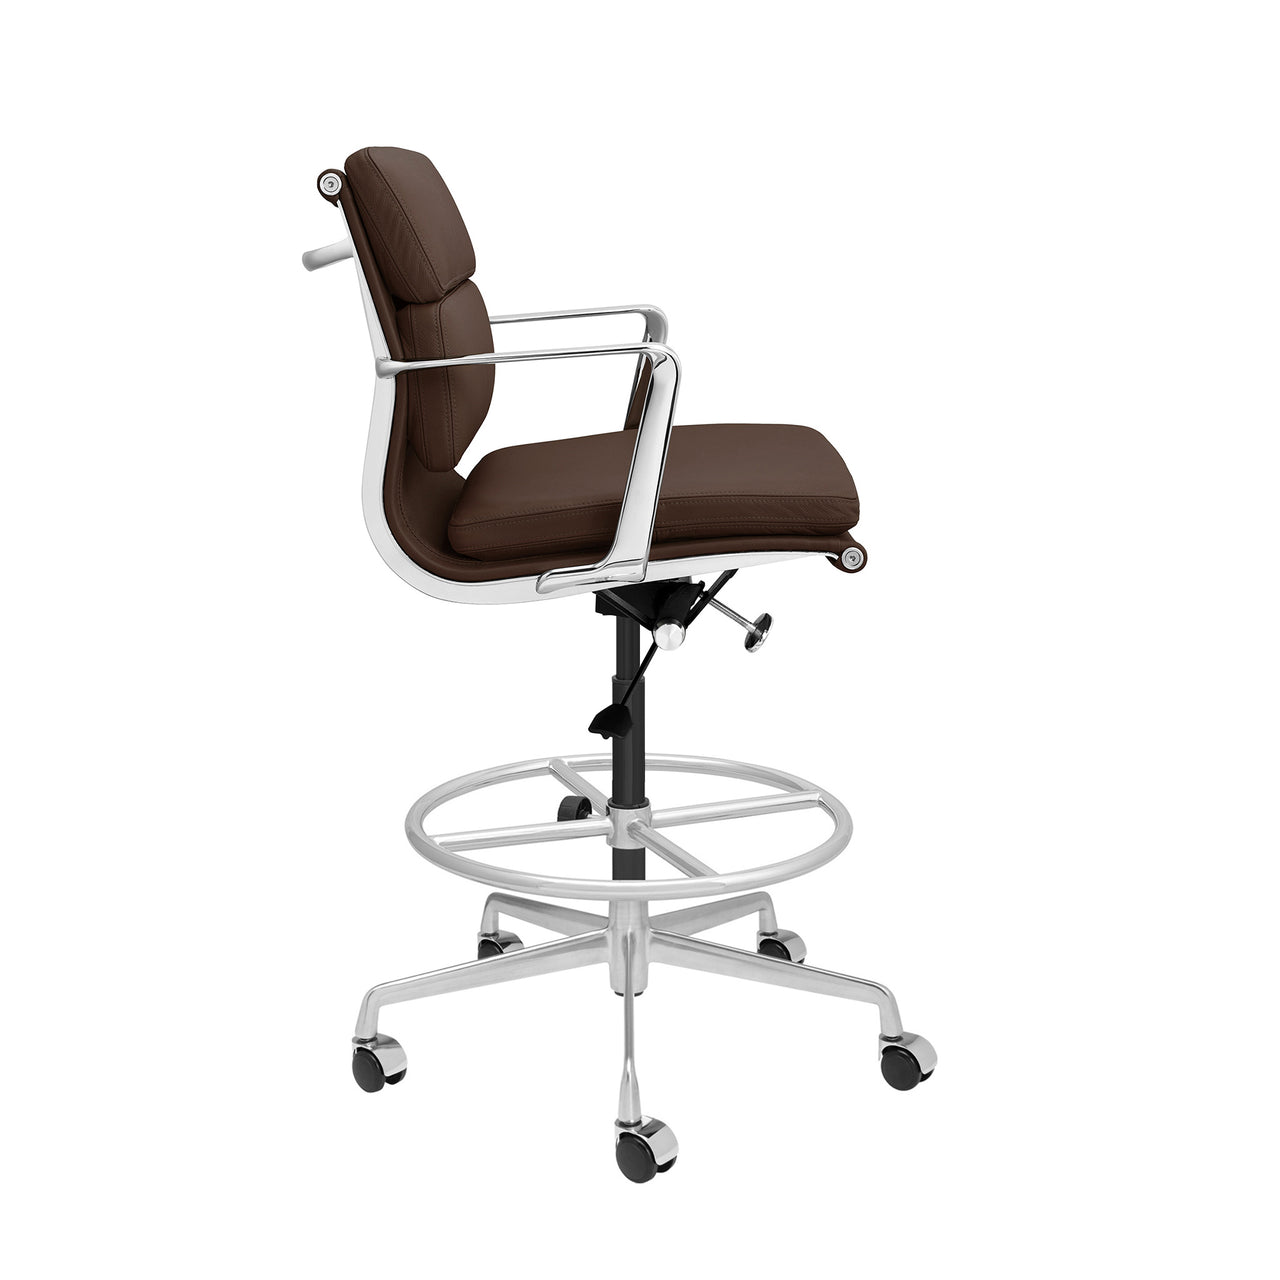 SOHO Pro Soft Pad Drafting Chair (Dark Brown Italian Leather)